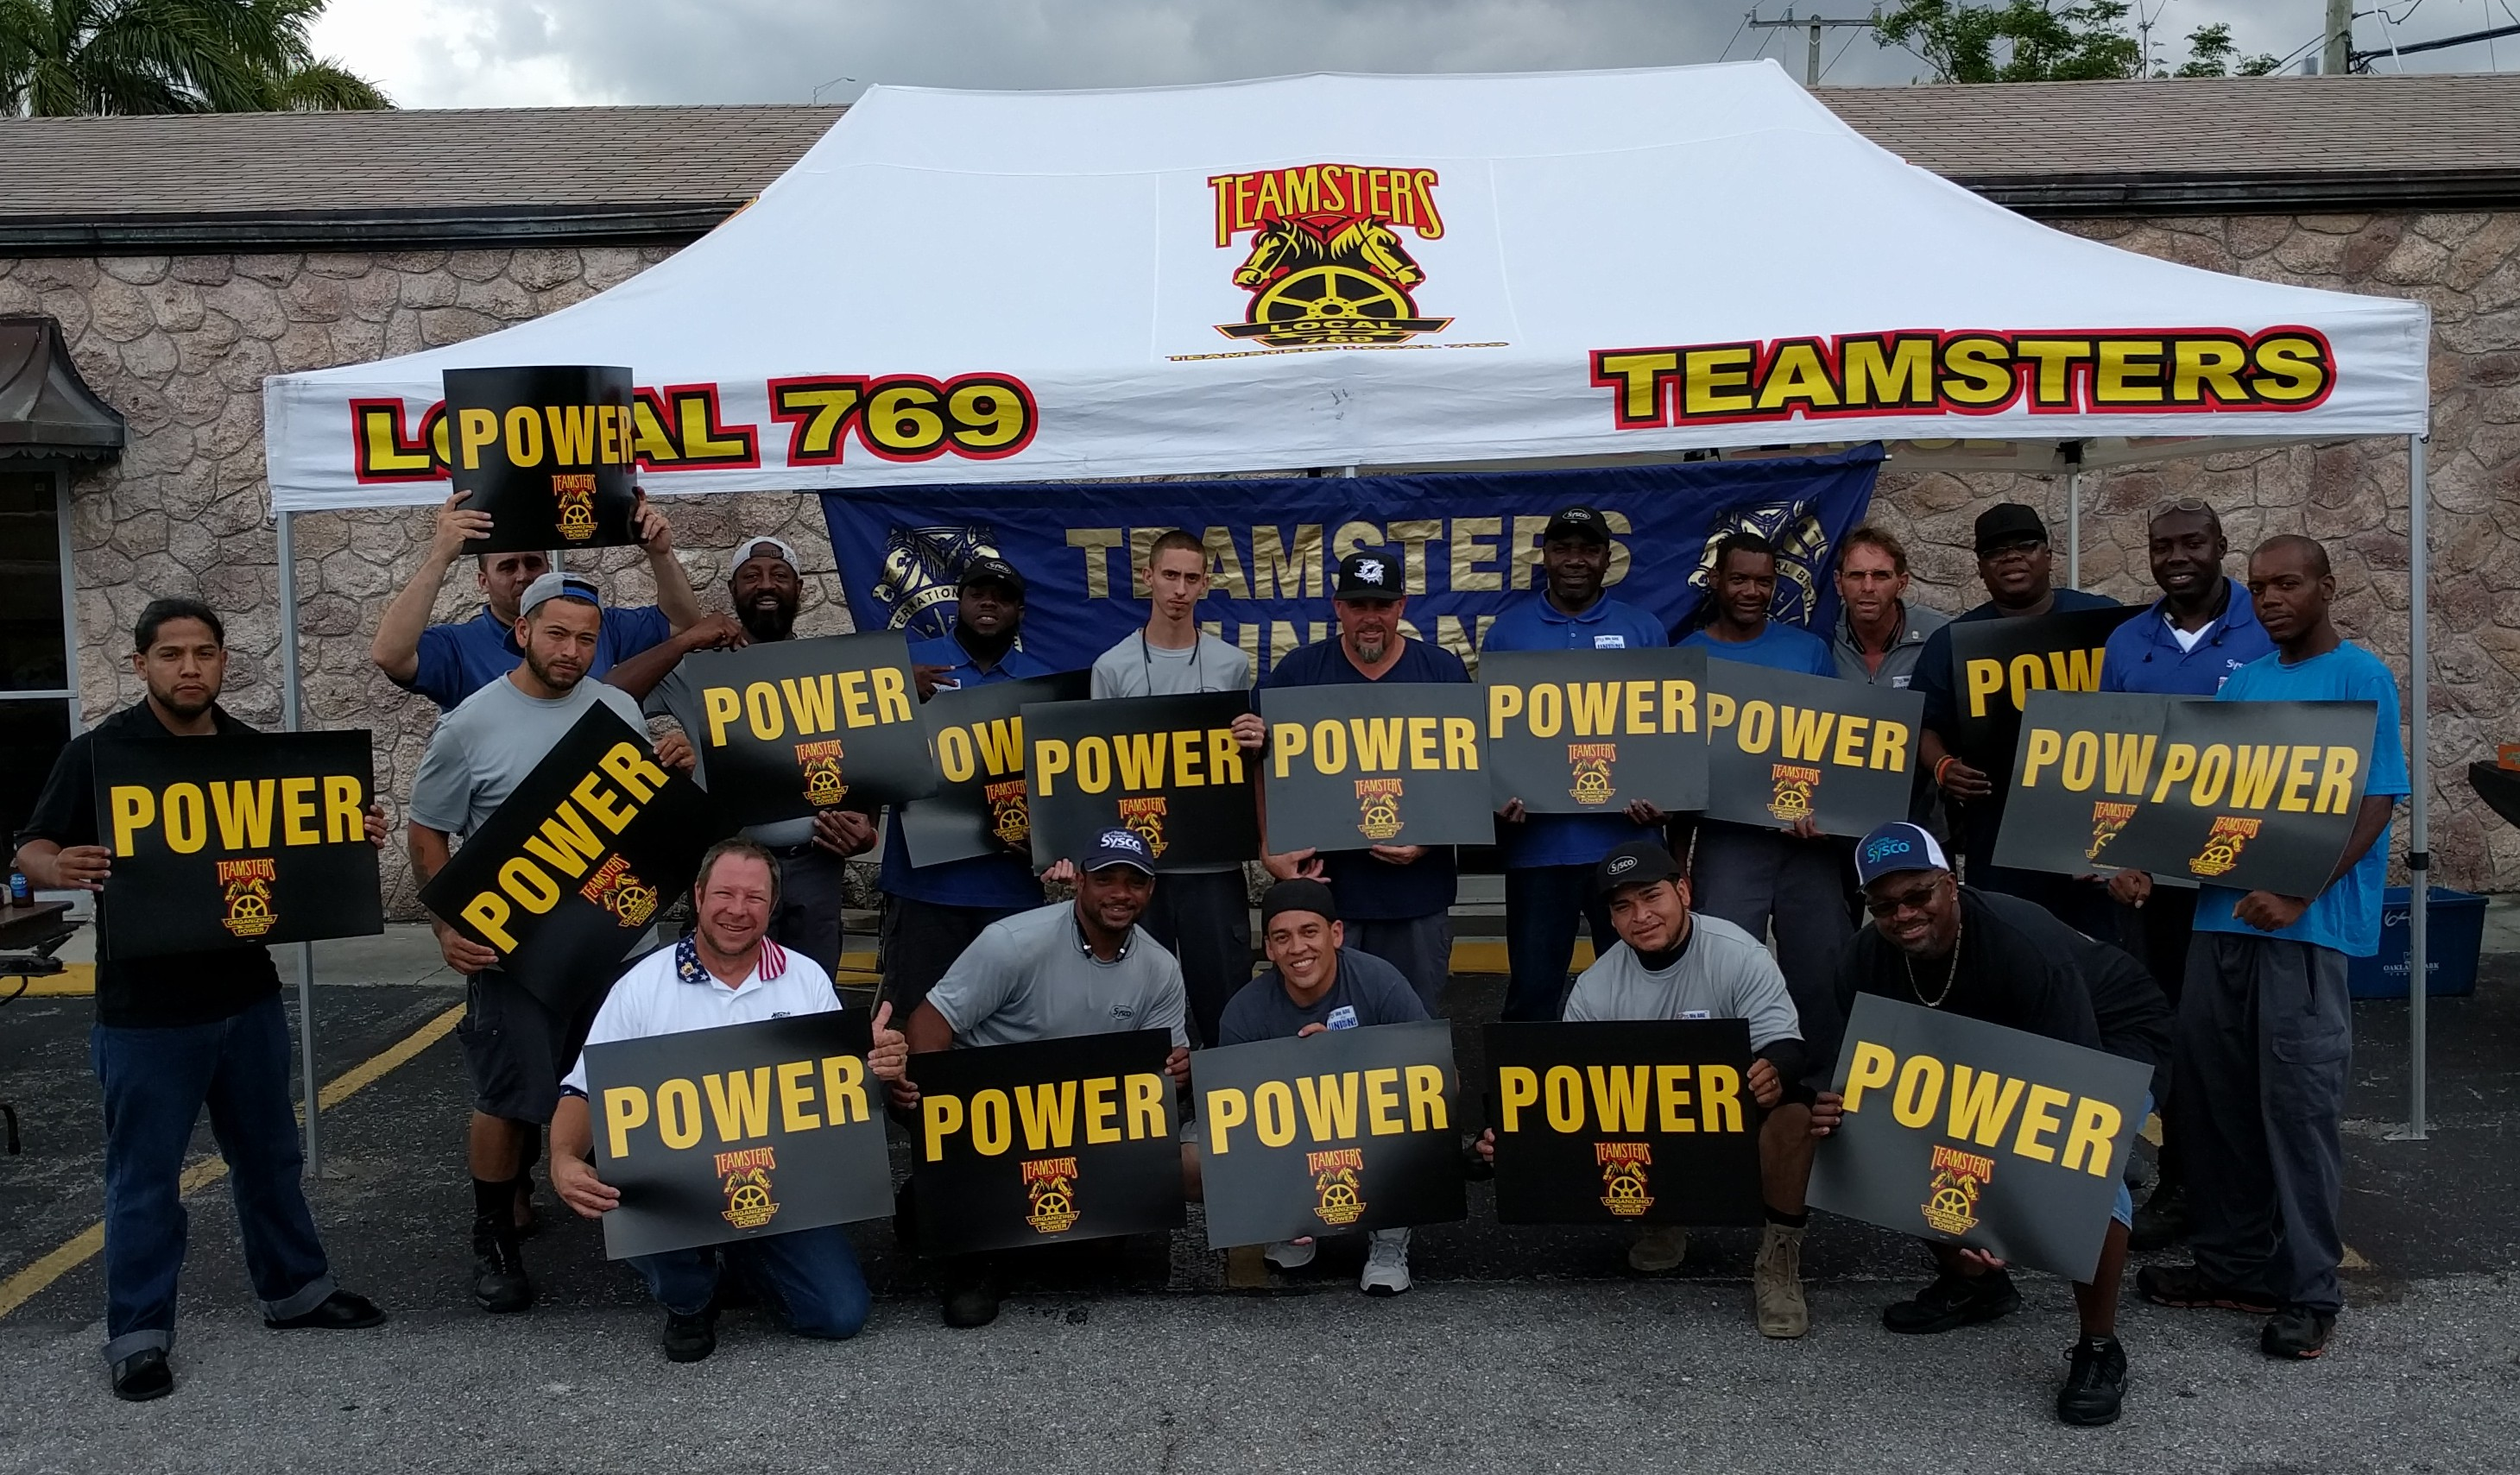 Teamsters Local 769 » Unity, Pride and Strength » Page 13